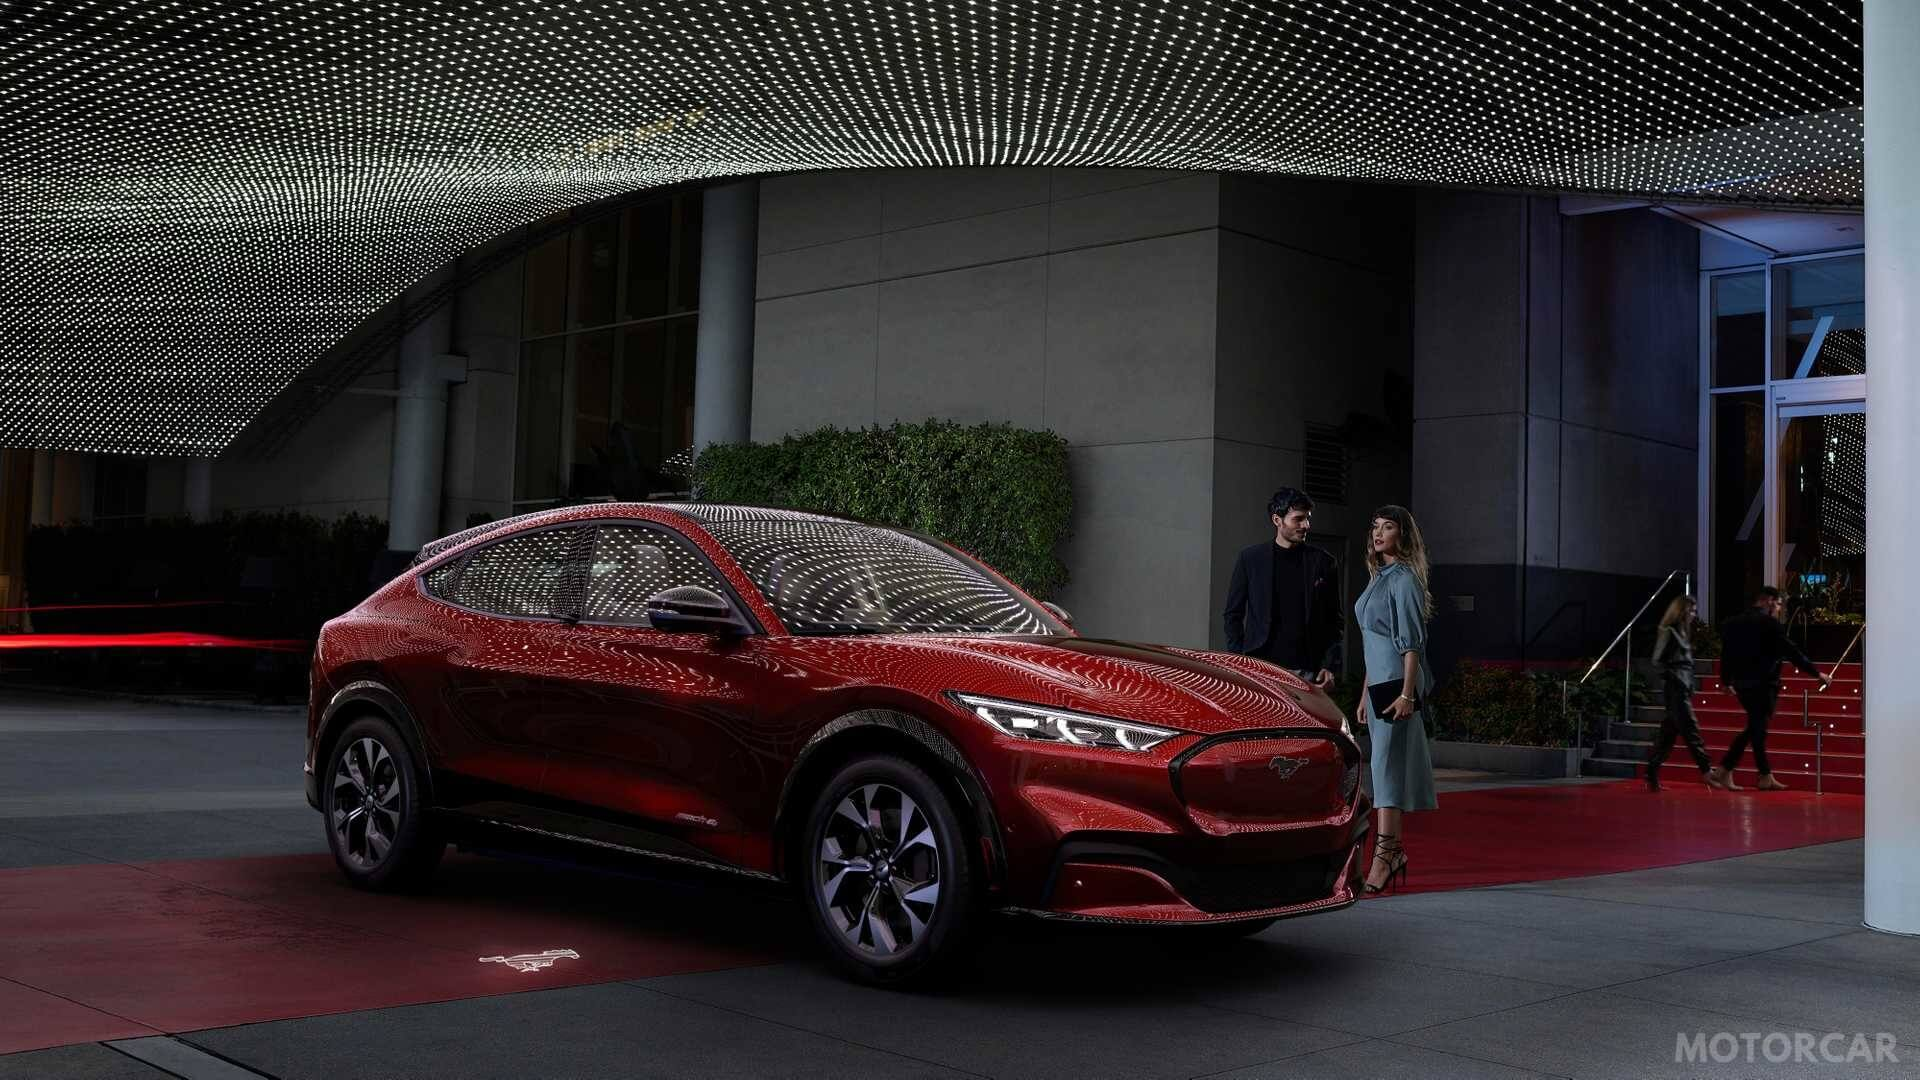 Unexpected congratulations from Elon Musk: Ford released its all-electric Mustang Mach-E SUV